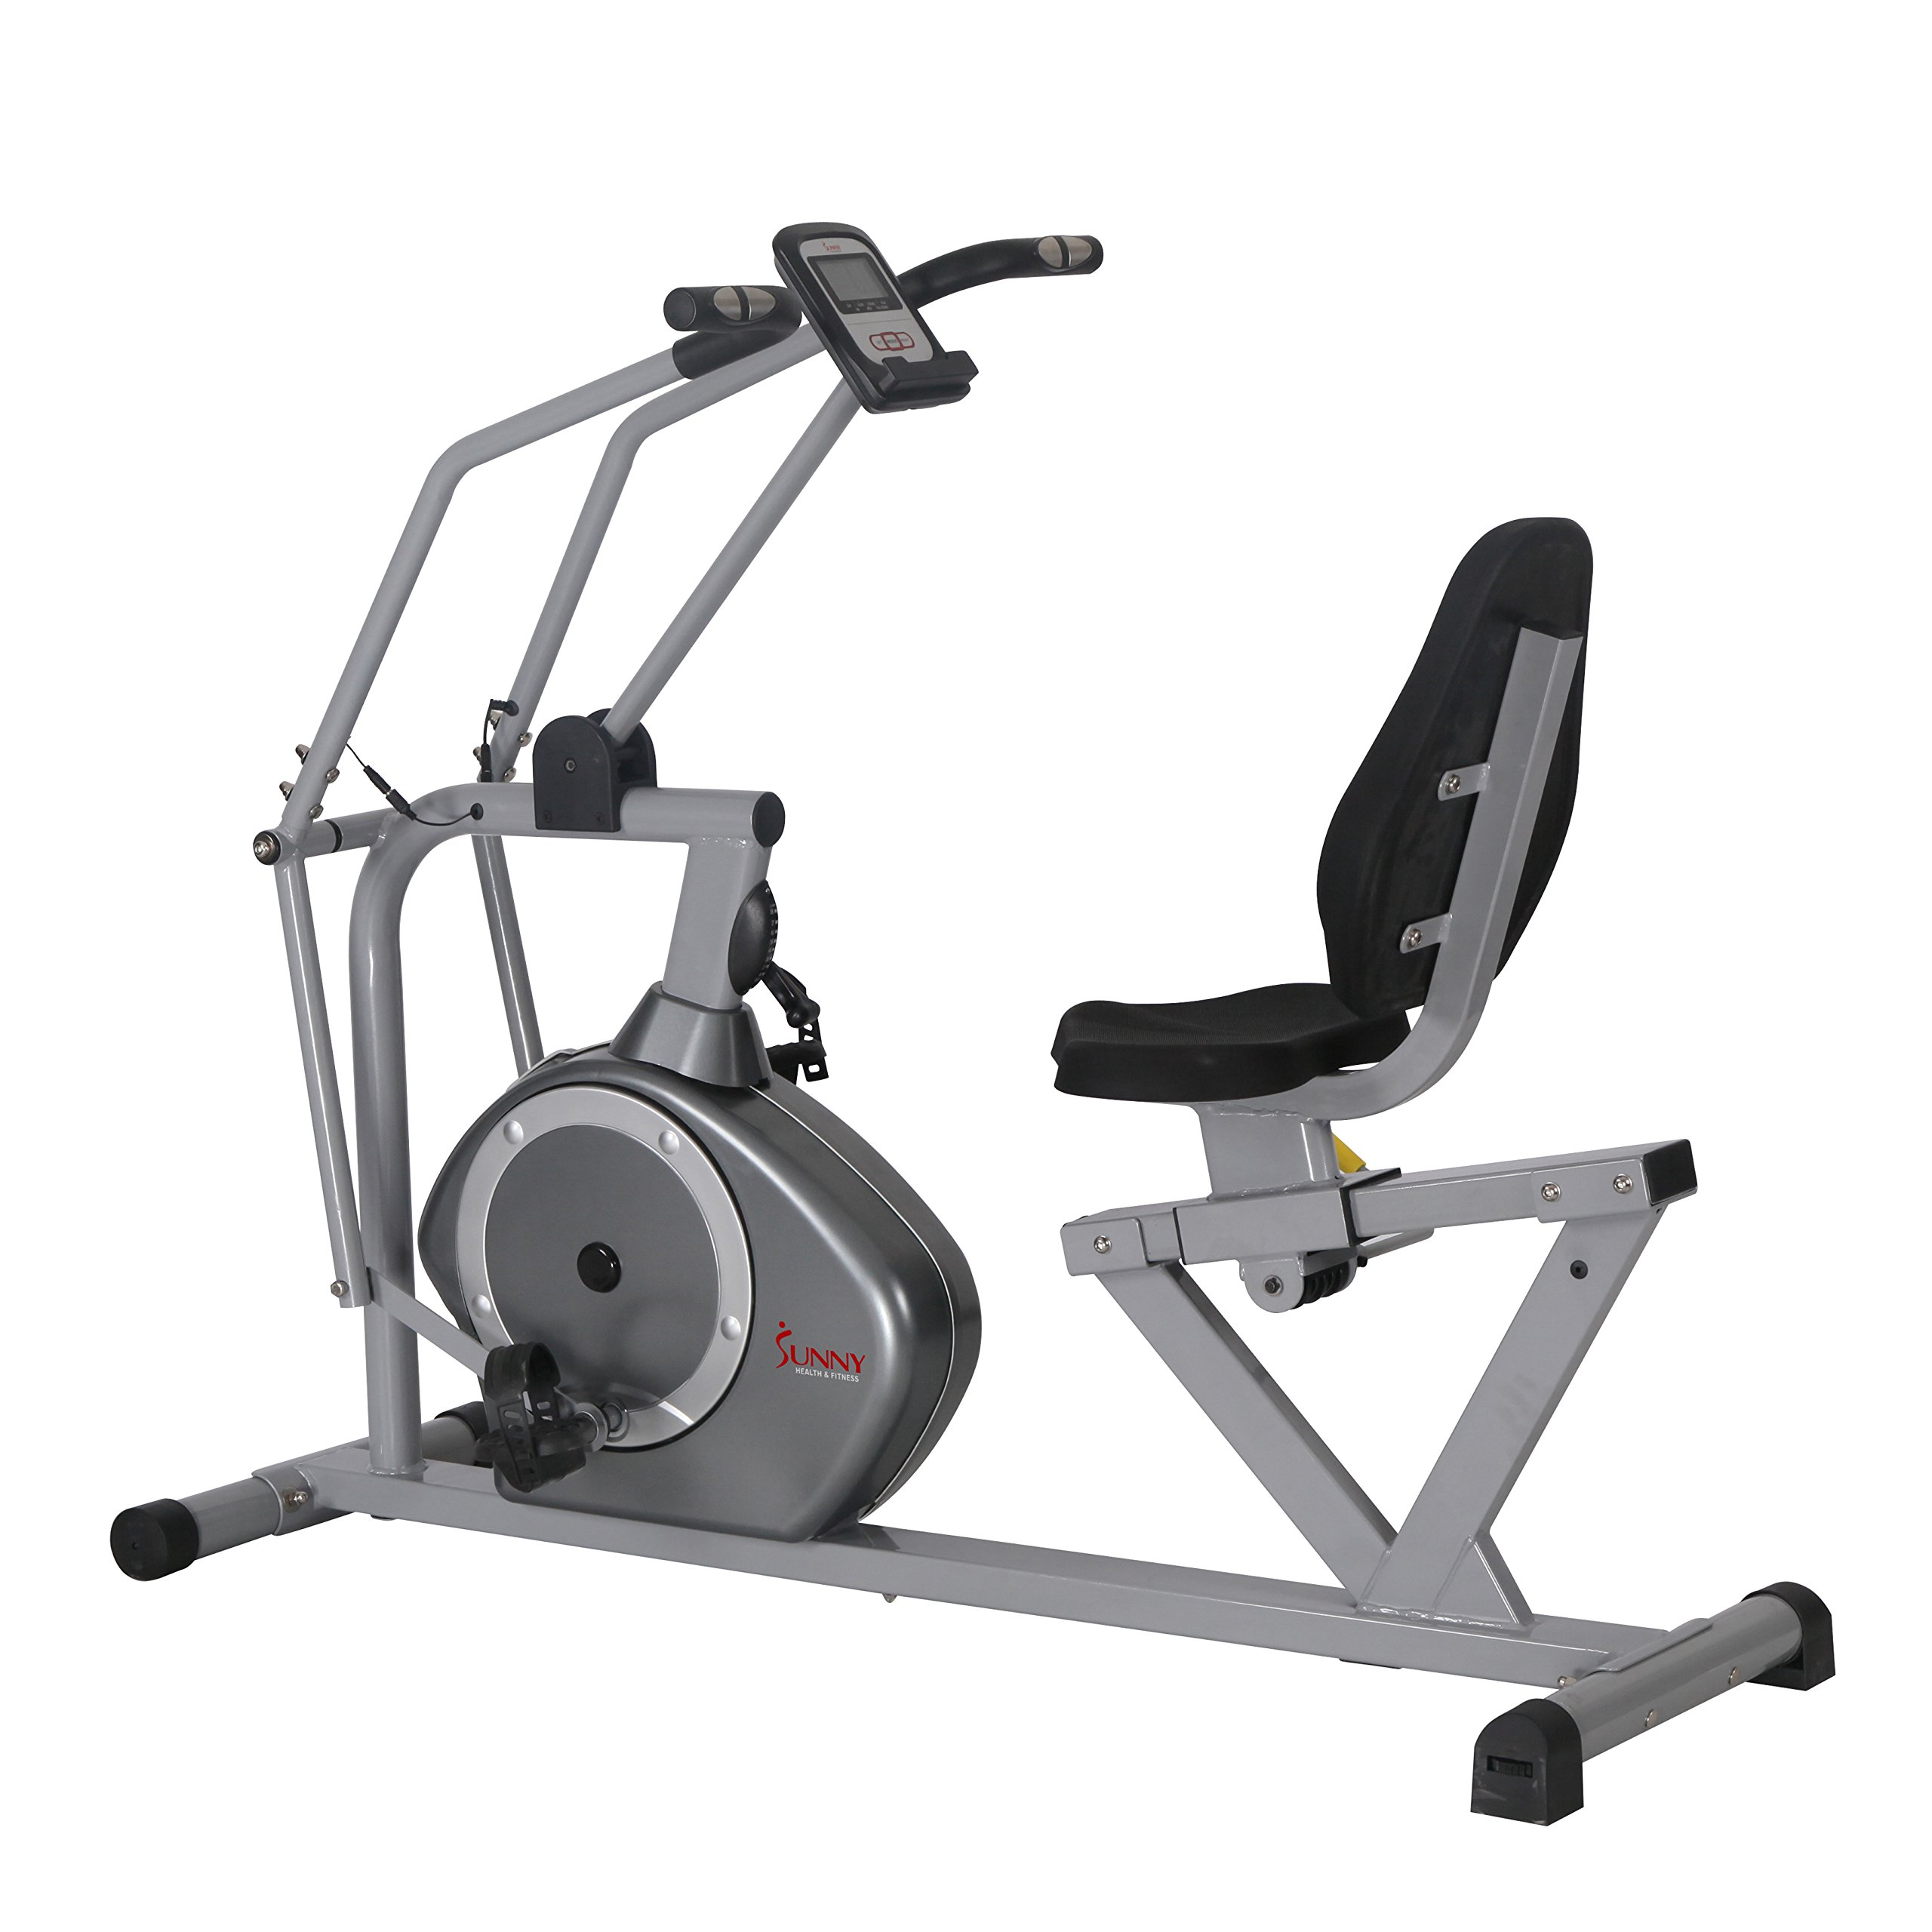 Sunny Health & Fitness Magnetic Recumbent Bike Exercise Bike, 350lb High Weight Capacity, Cross Training, Arm Exercisers, Monitor, Pulse Rate Monitoring - SF-RB4708 by Sunny Health & Fitness (Image #3)